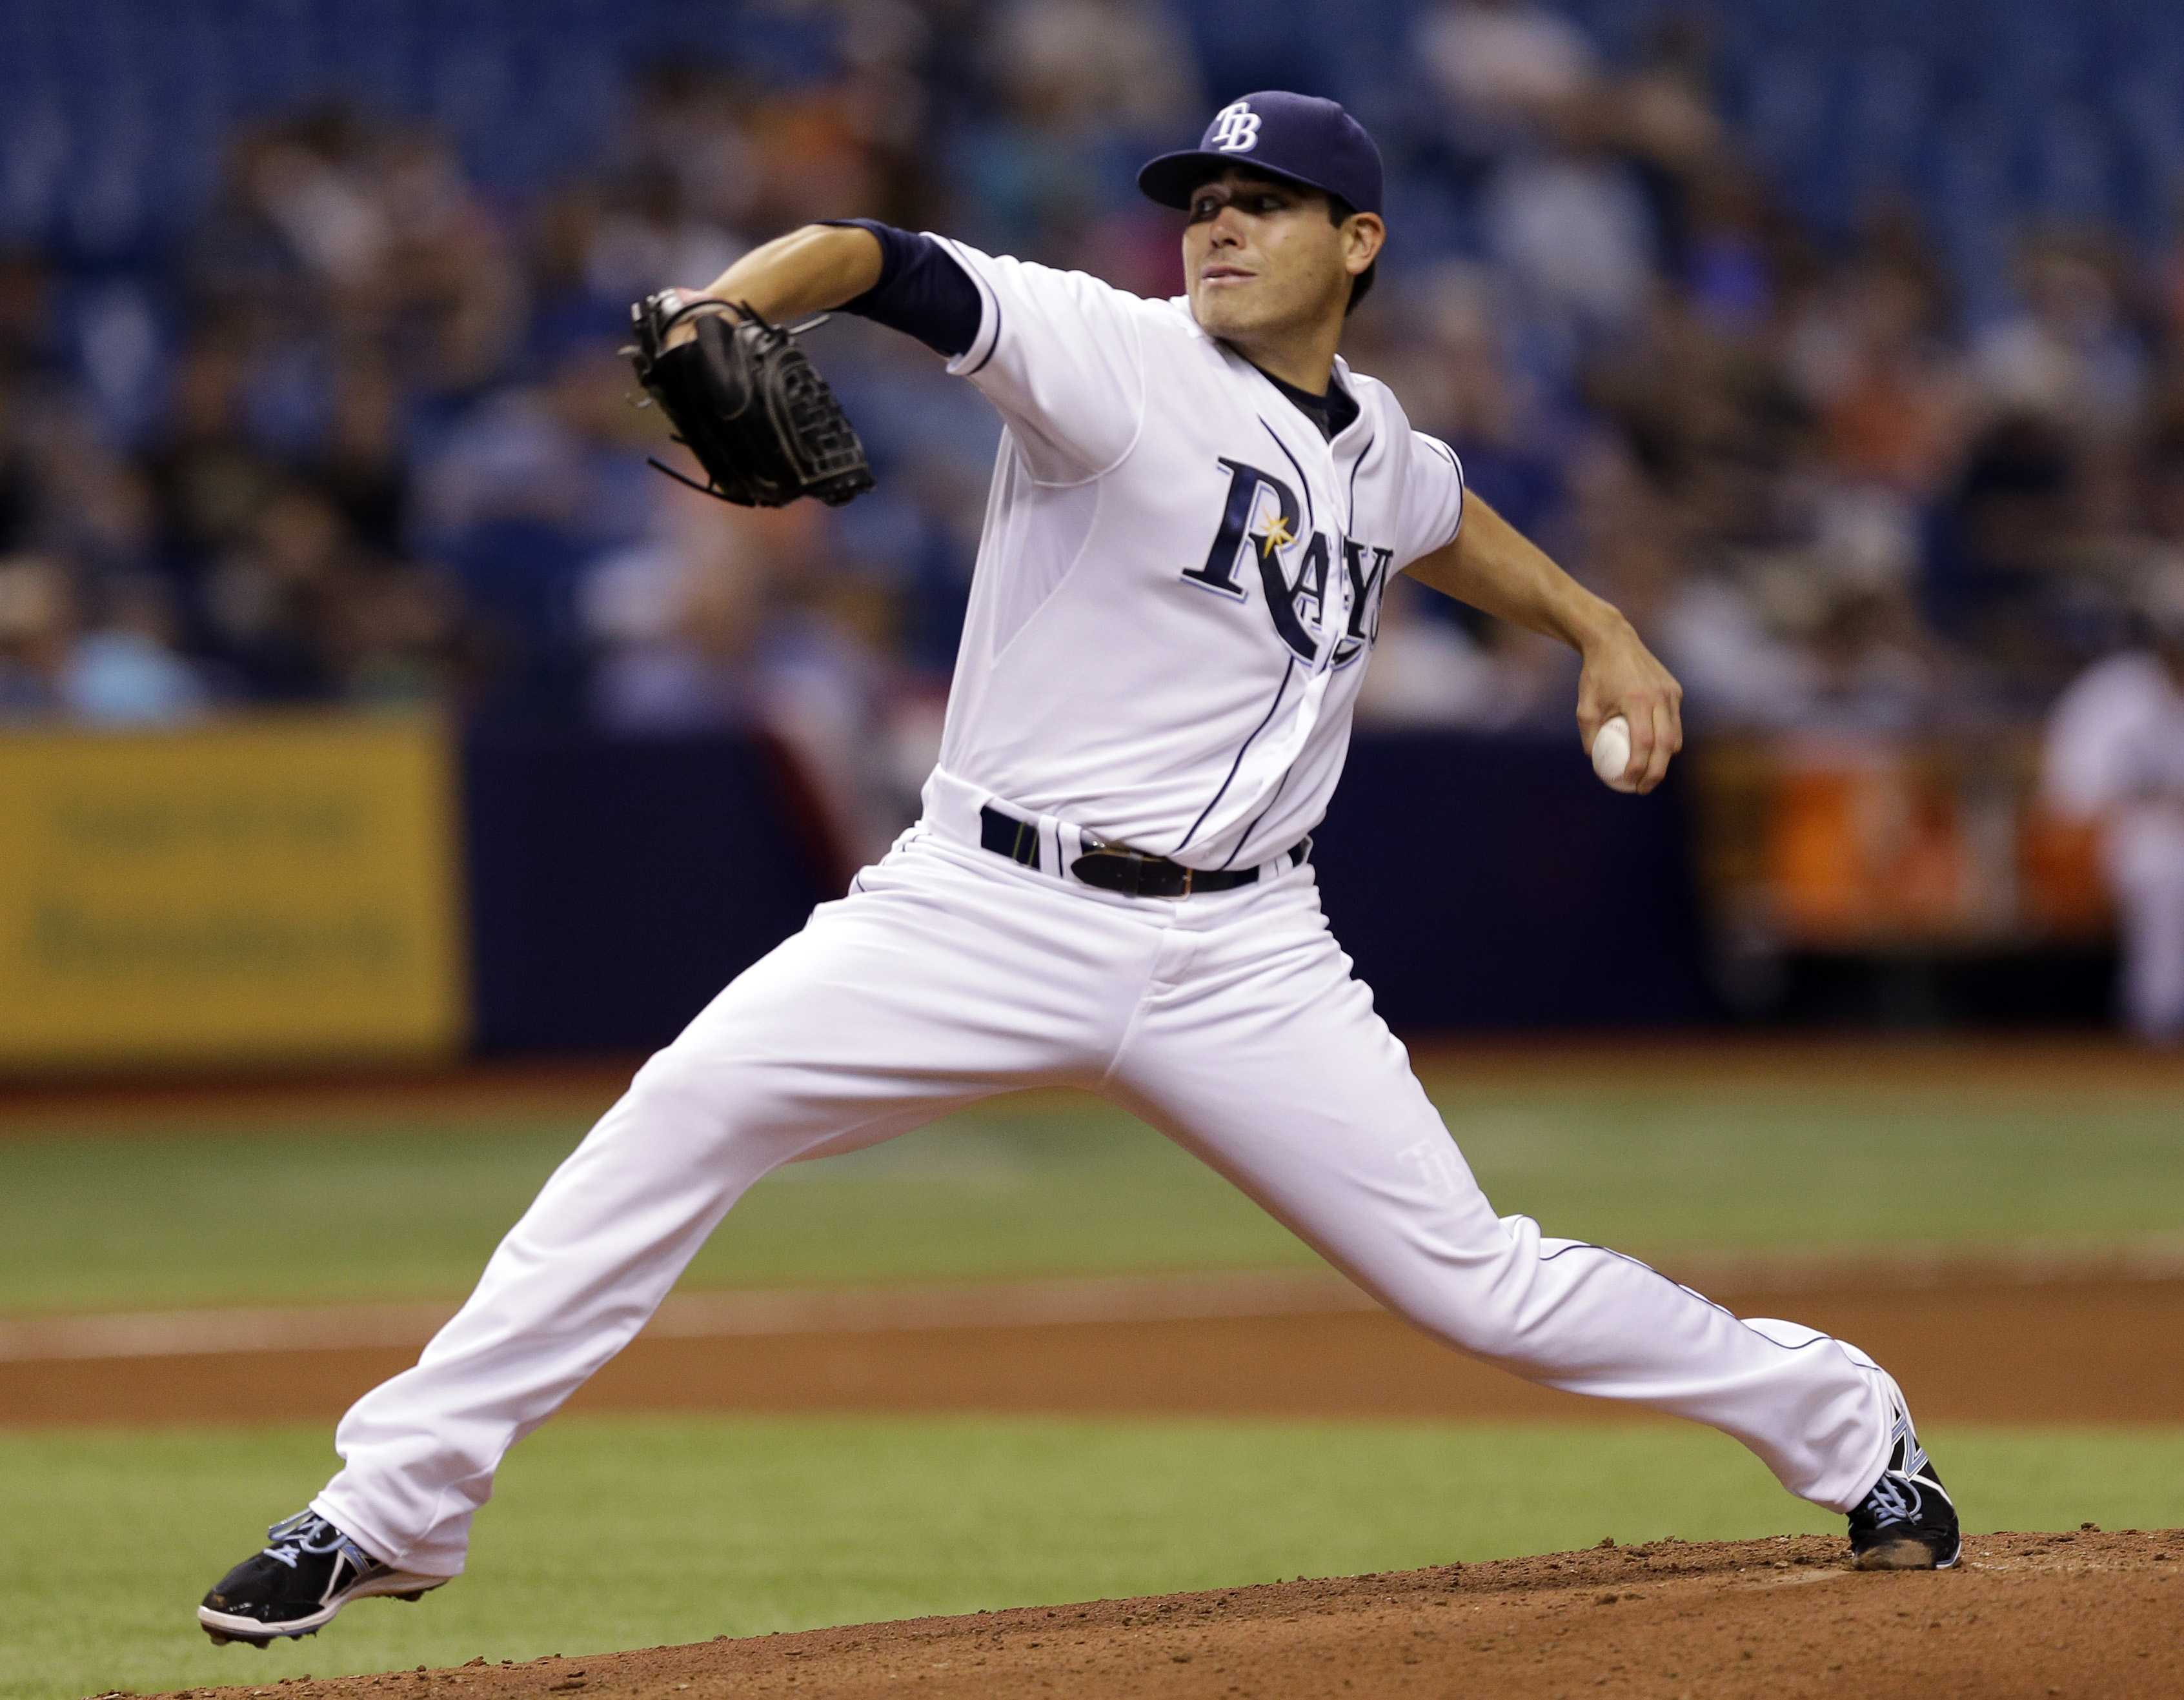 Tampa Bay Rays pitcher Matt Moore is one of the many pitchers this season that needs Tommy John surgery. Photo courtesy of AP.